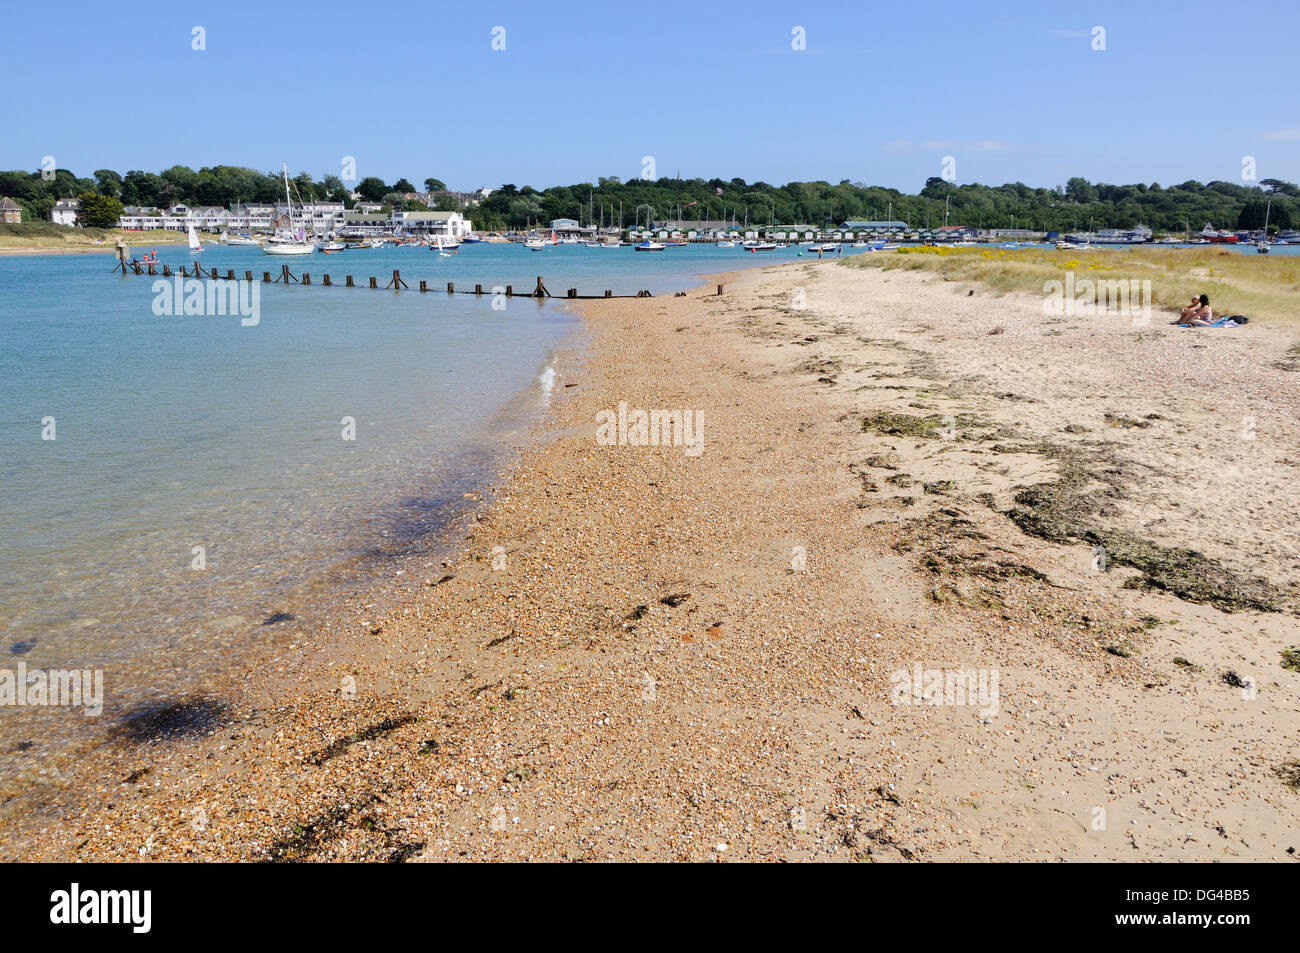 St. Helen's beach and Bembridge Harbour, Isle of Wight - Stock Image